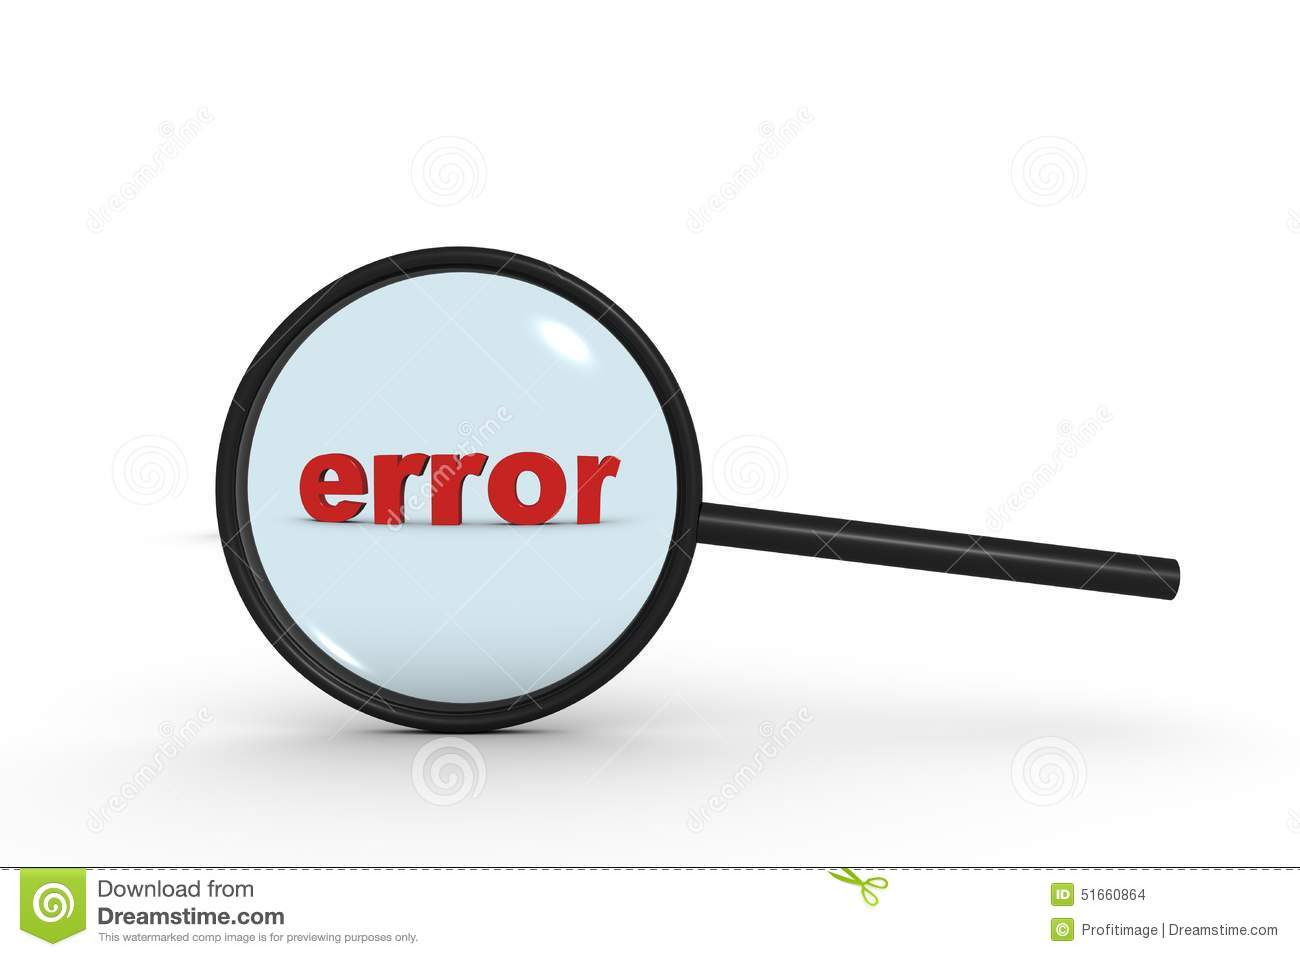 search error text inside magnifying glass means finding errors 51660864